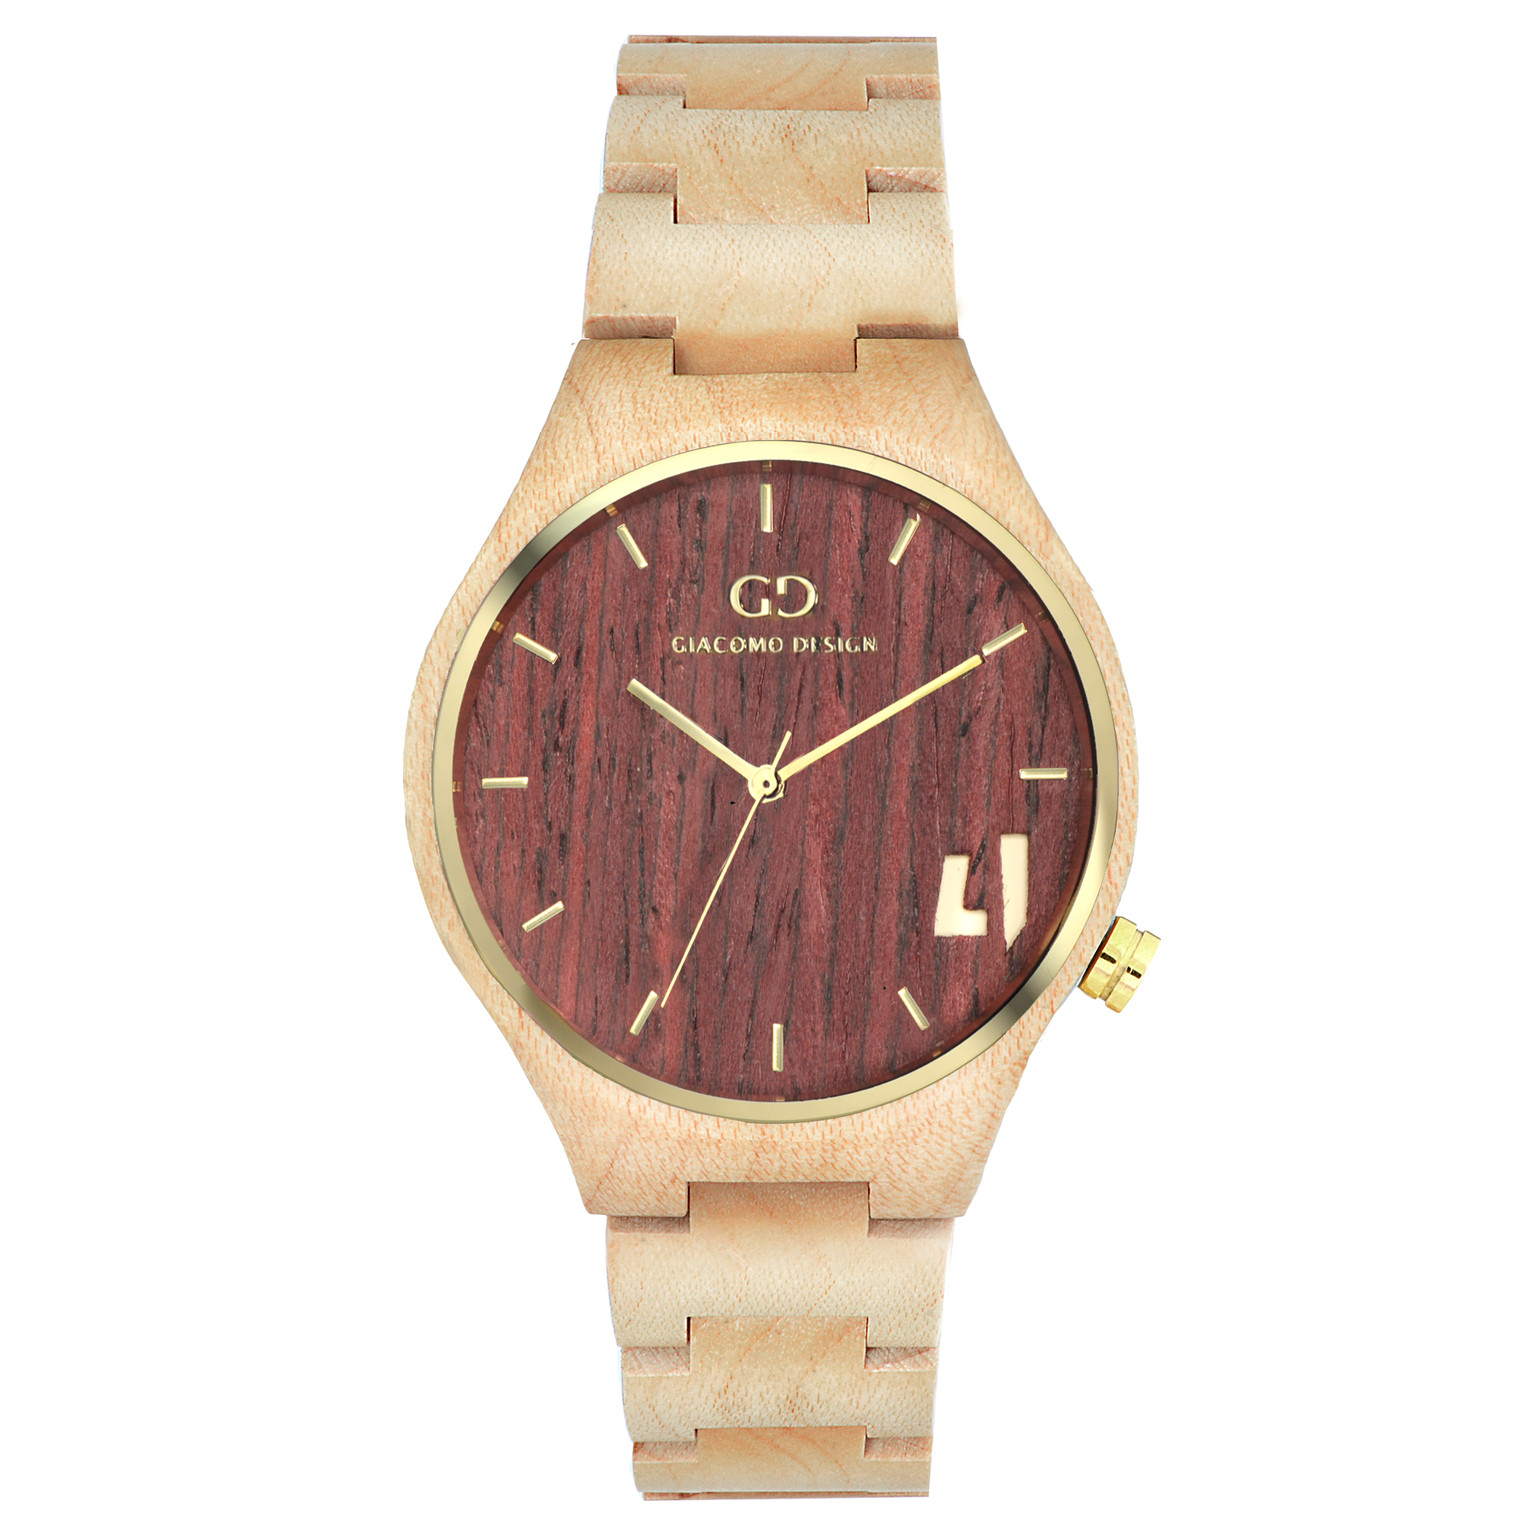 Giacomo Design wood watch Eccezionali Quattro maple wood